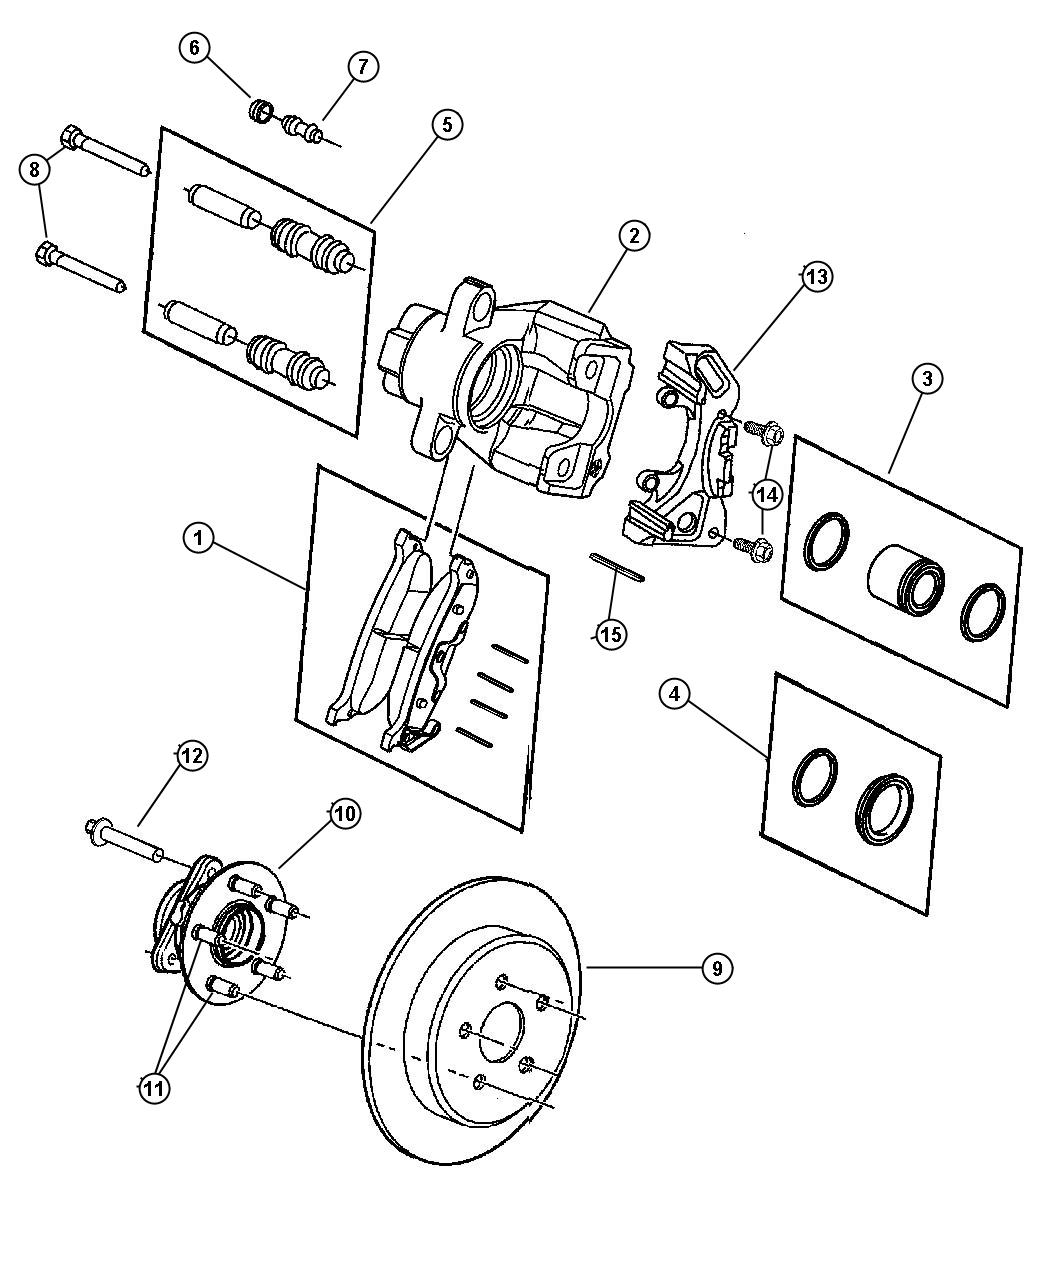 2006 Chrysler Pacifica Brakes, Rear Disc